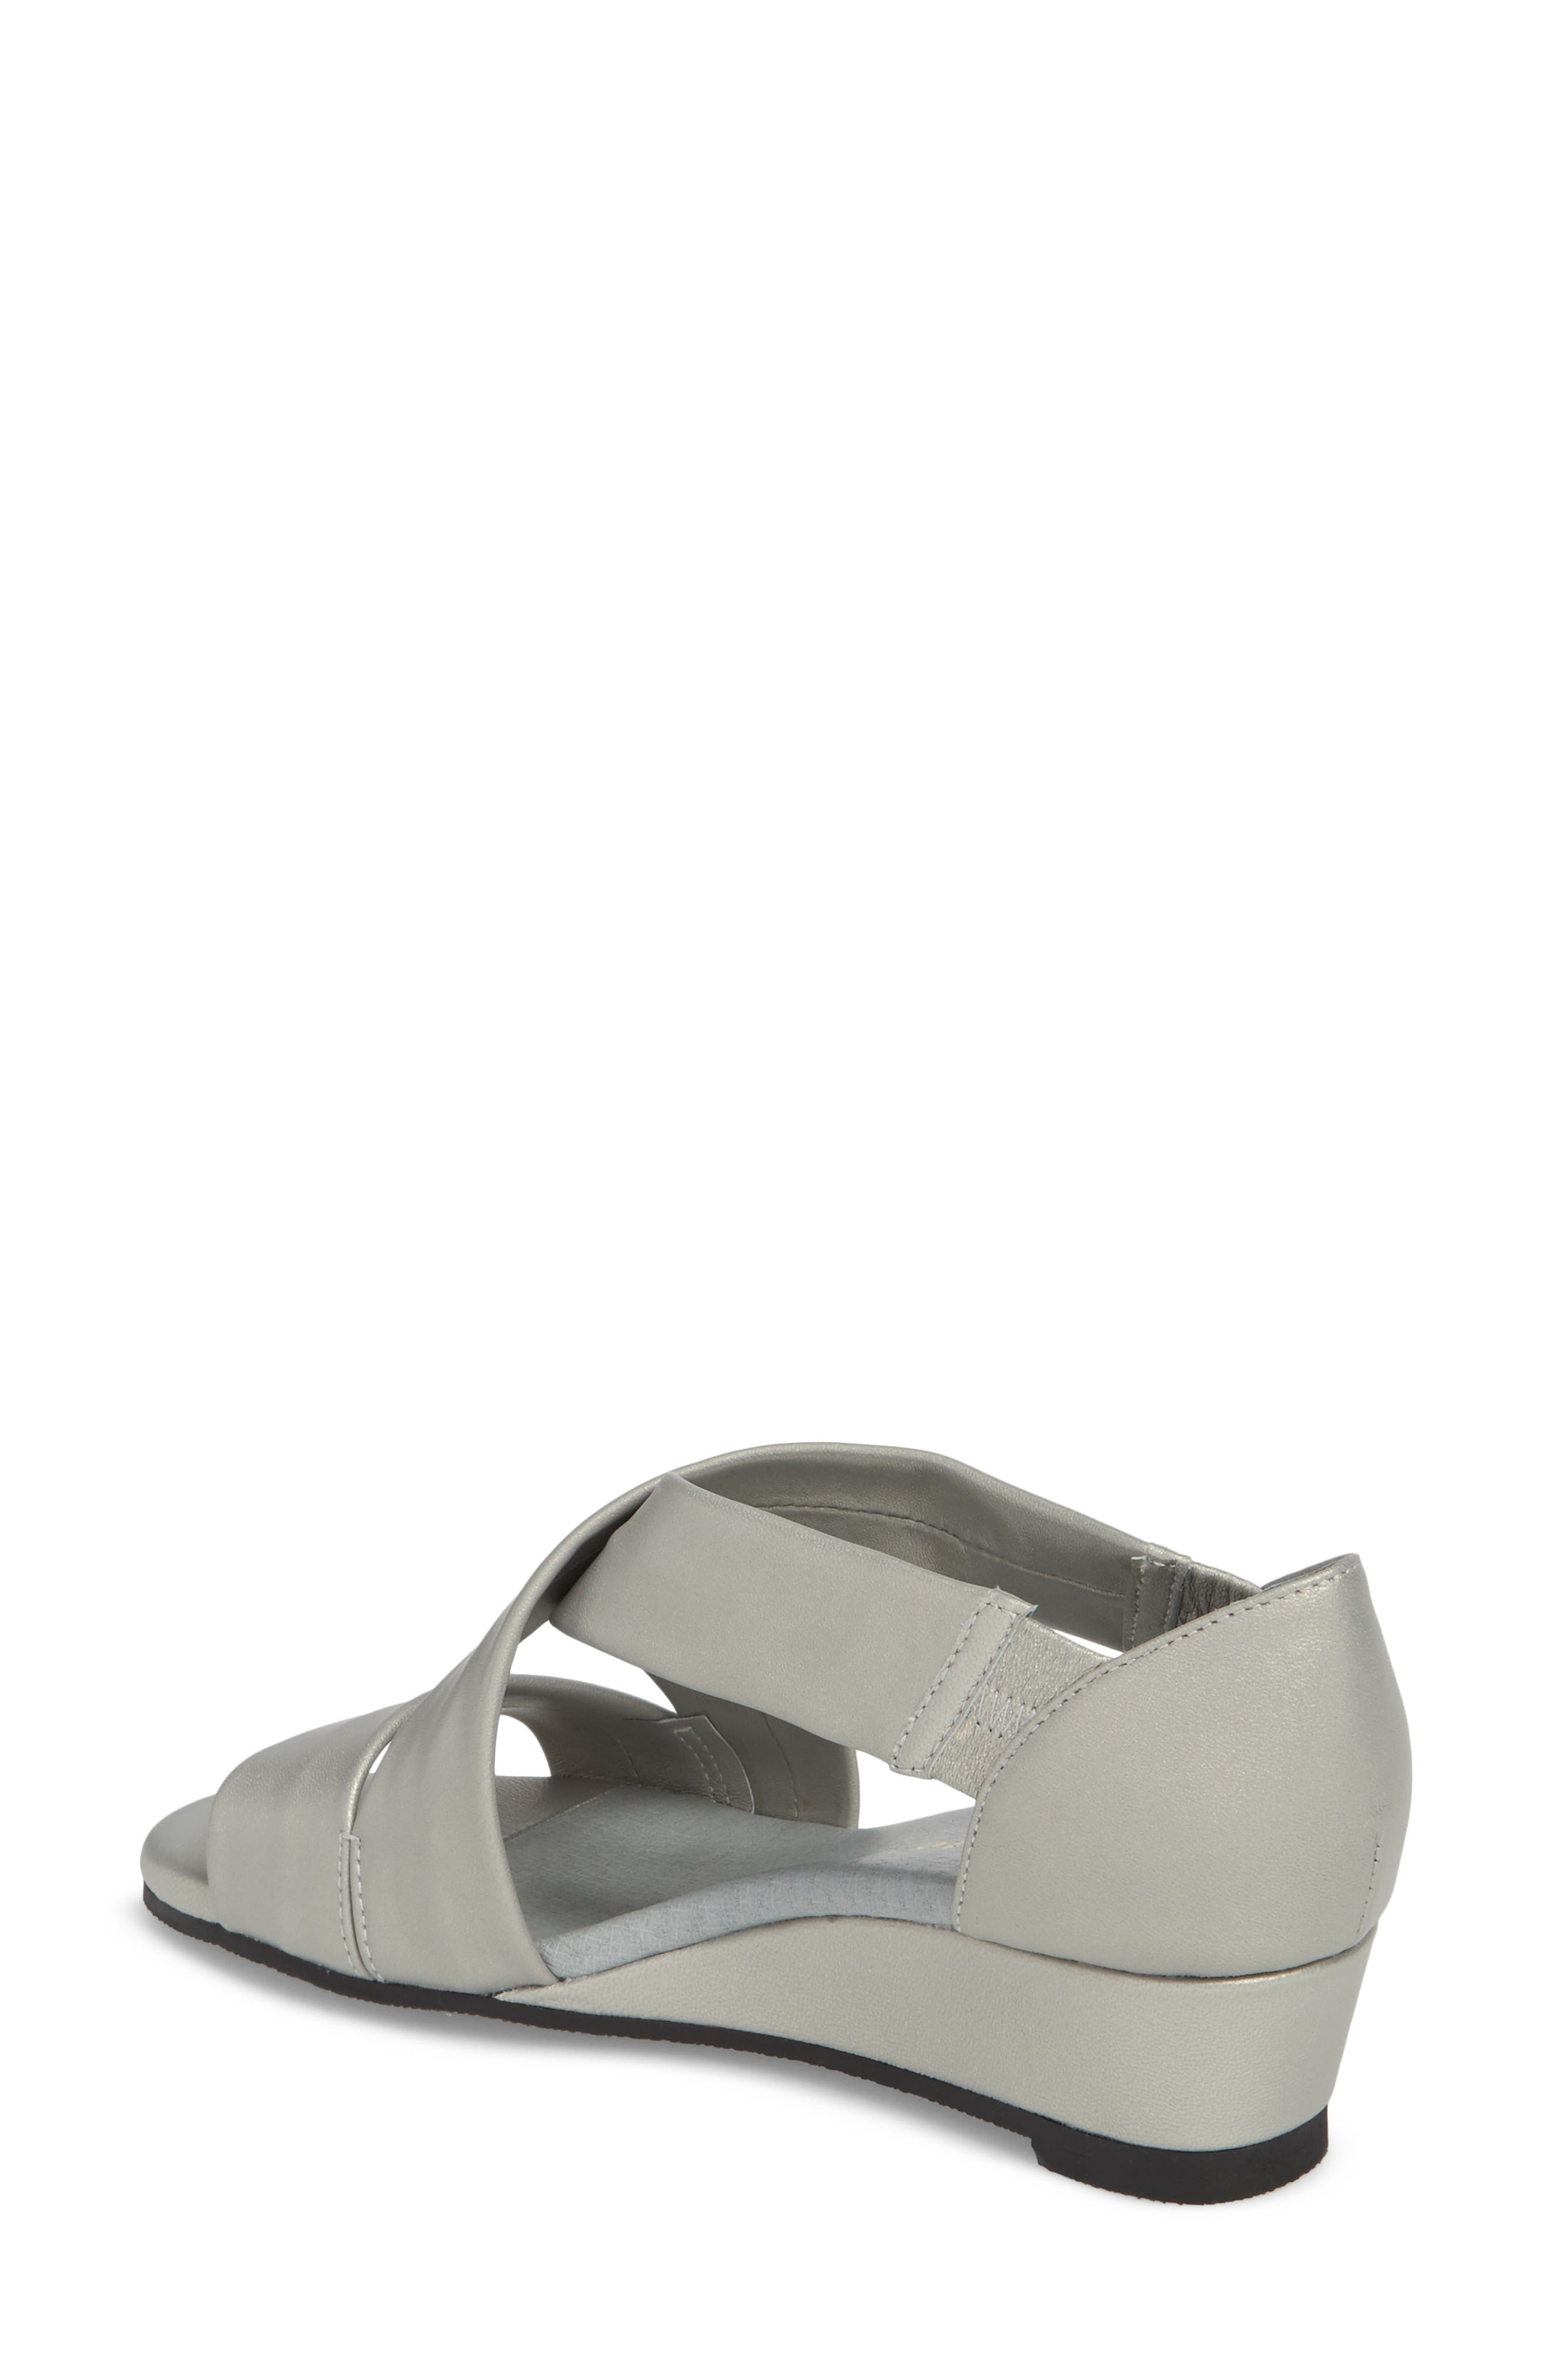 DAVID TATE, Swell Cross Strap Wedge Sandal, Alternate thumbnail 2, color, SILVER LEATHER